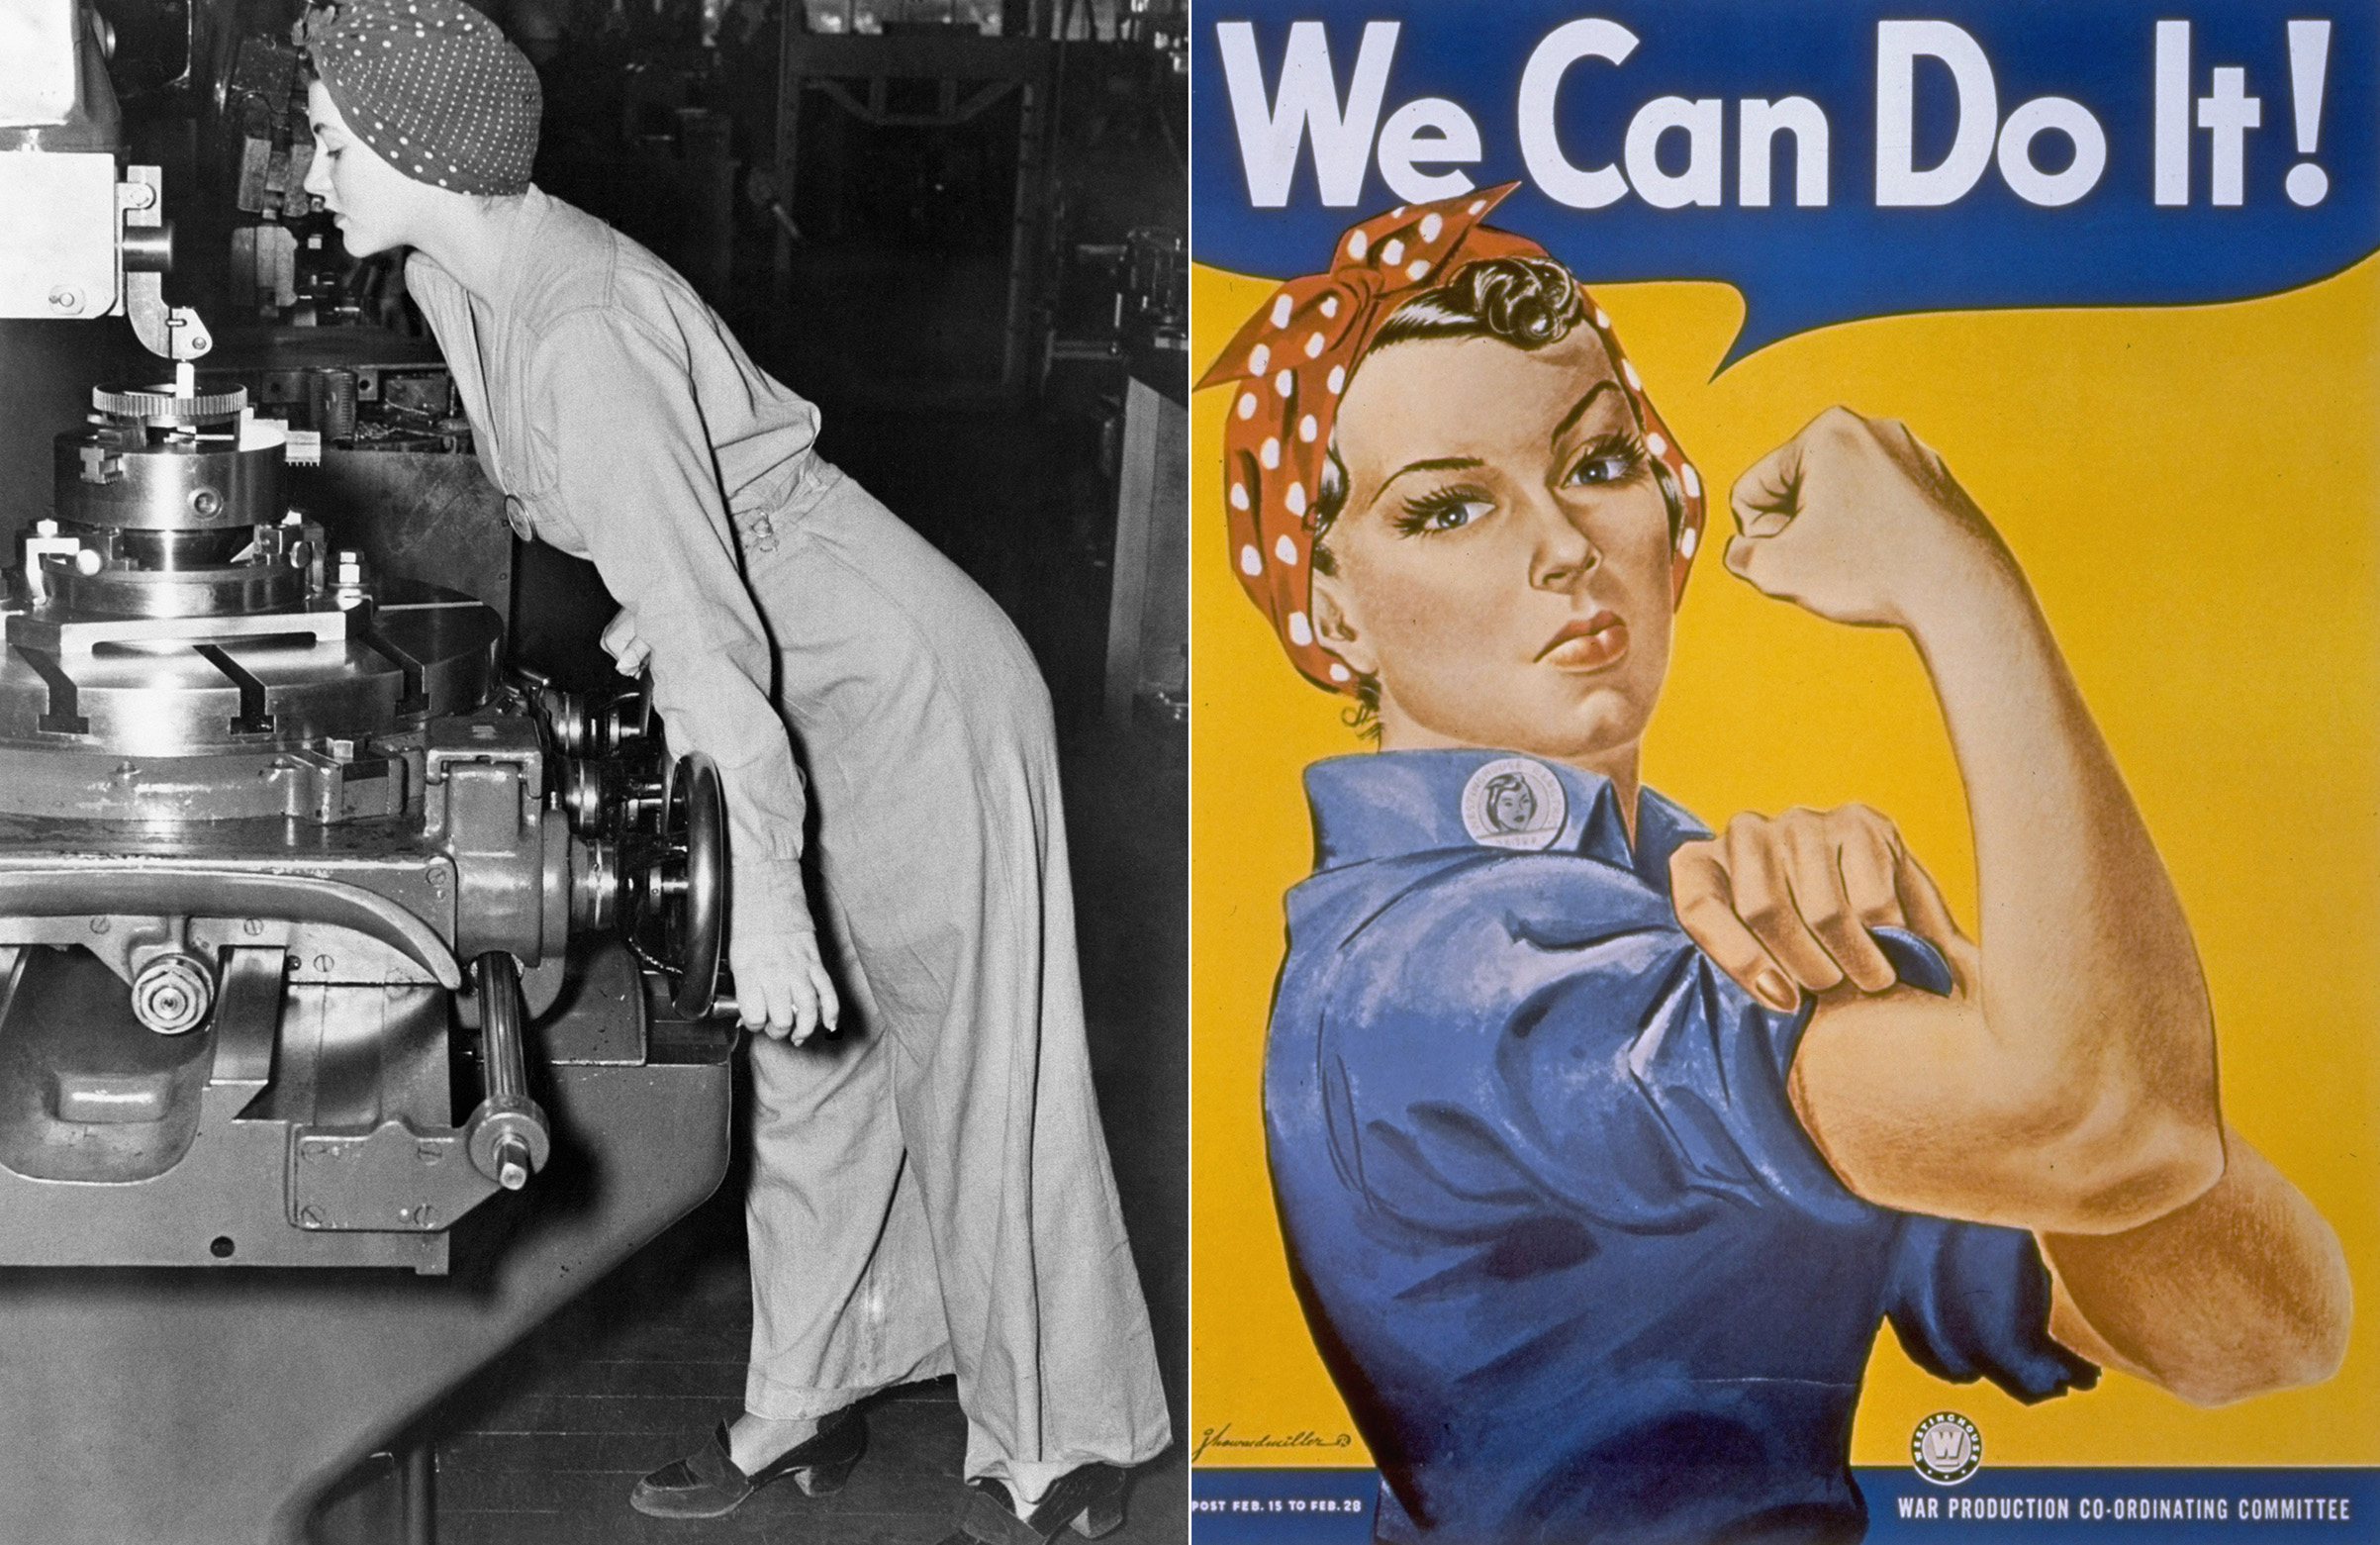 At left, the 1942 wire image of Naomi Parker at work in California. At right, the 'We Can Do It' poster by J. Howard Miller.